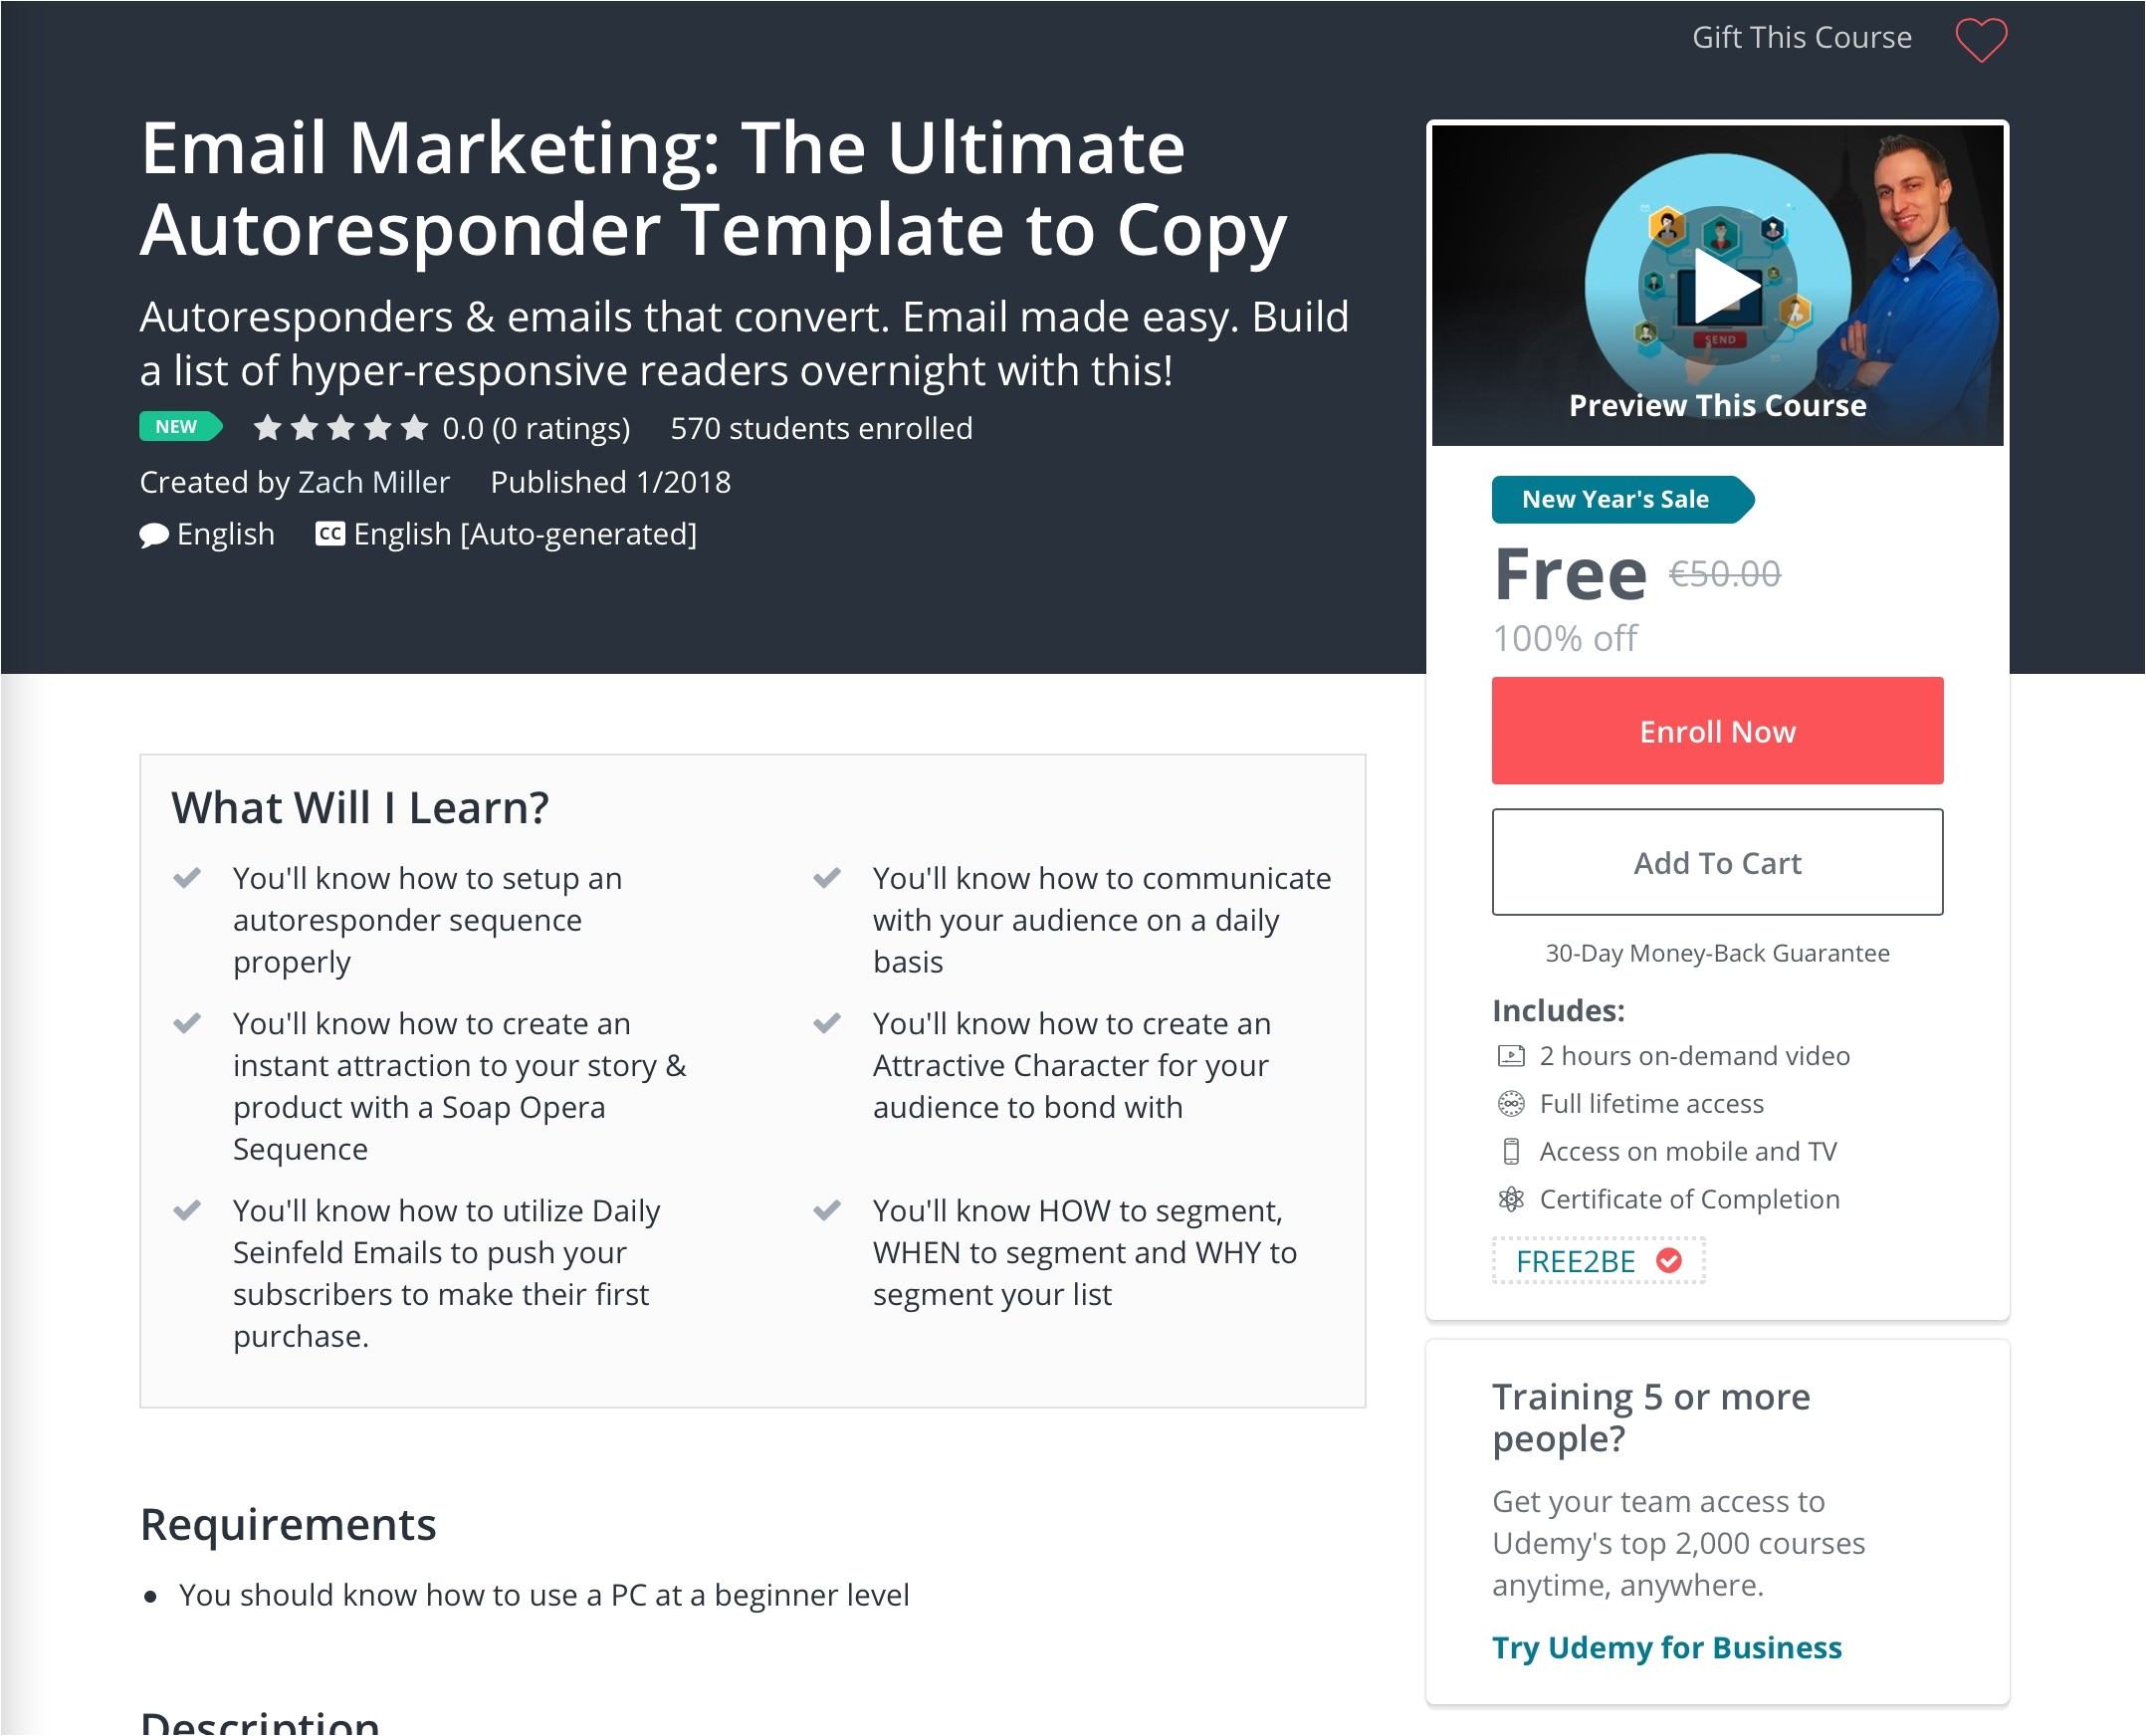 The Ultimate Email Marketing Template Series Review Comidoc Email Marketing the Ultimate Autoresponder